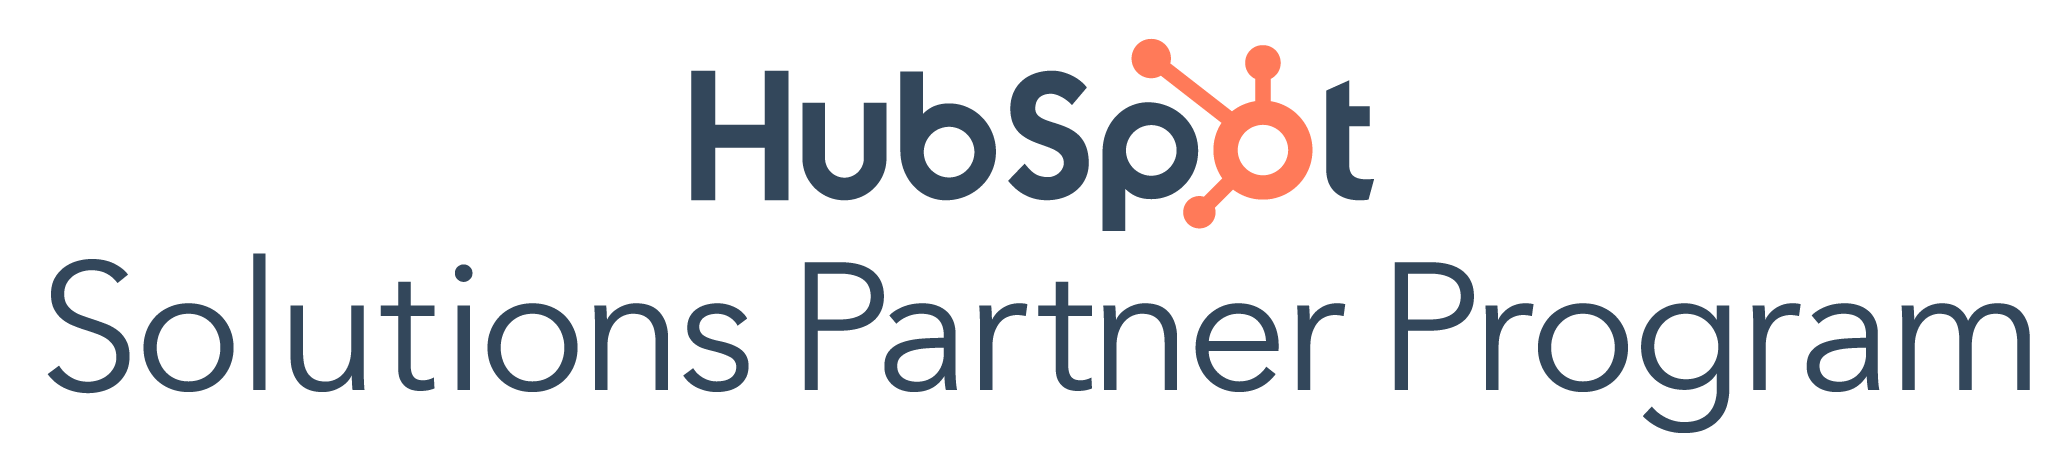 solution partner kolb digital hubspot